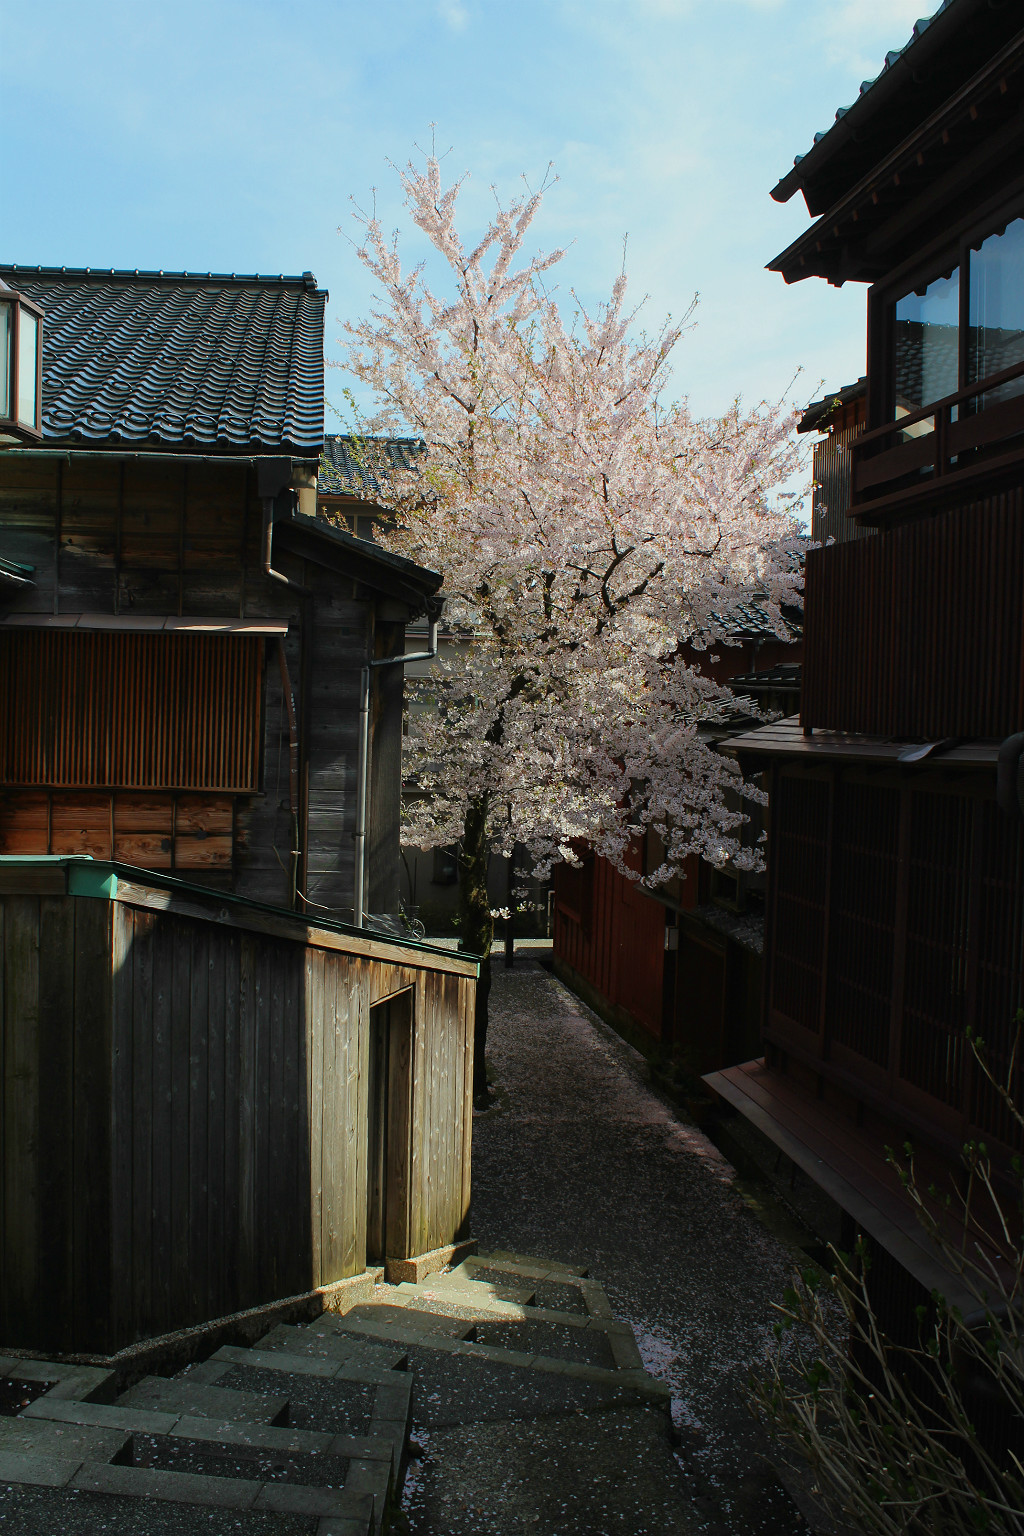 The lone sakura cherry in Kuragari-zaka, the Dark Slope, in Kazuemachi, Kanazawa